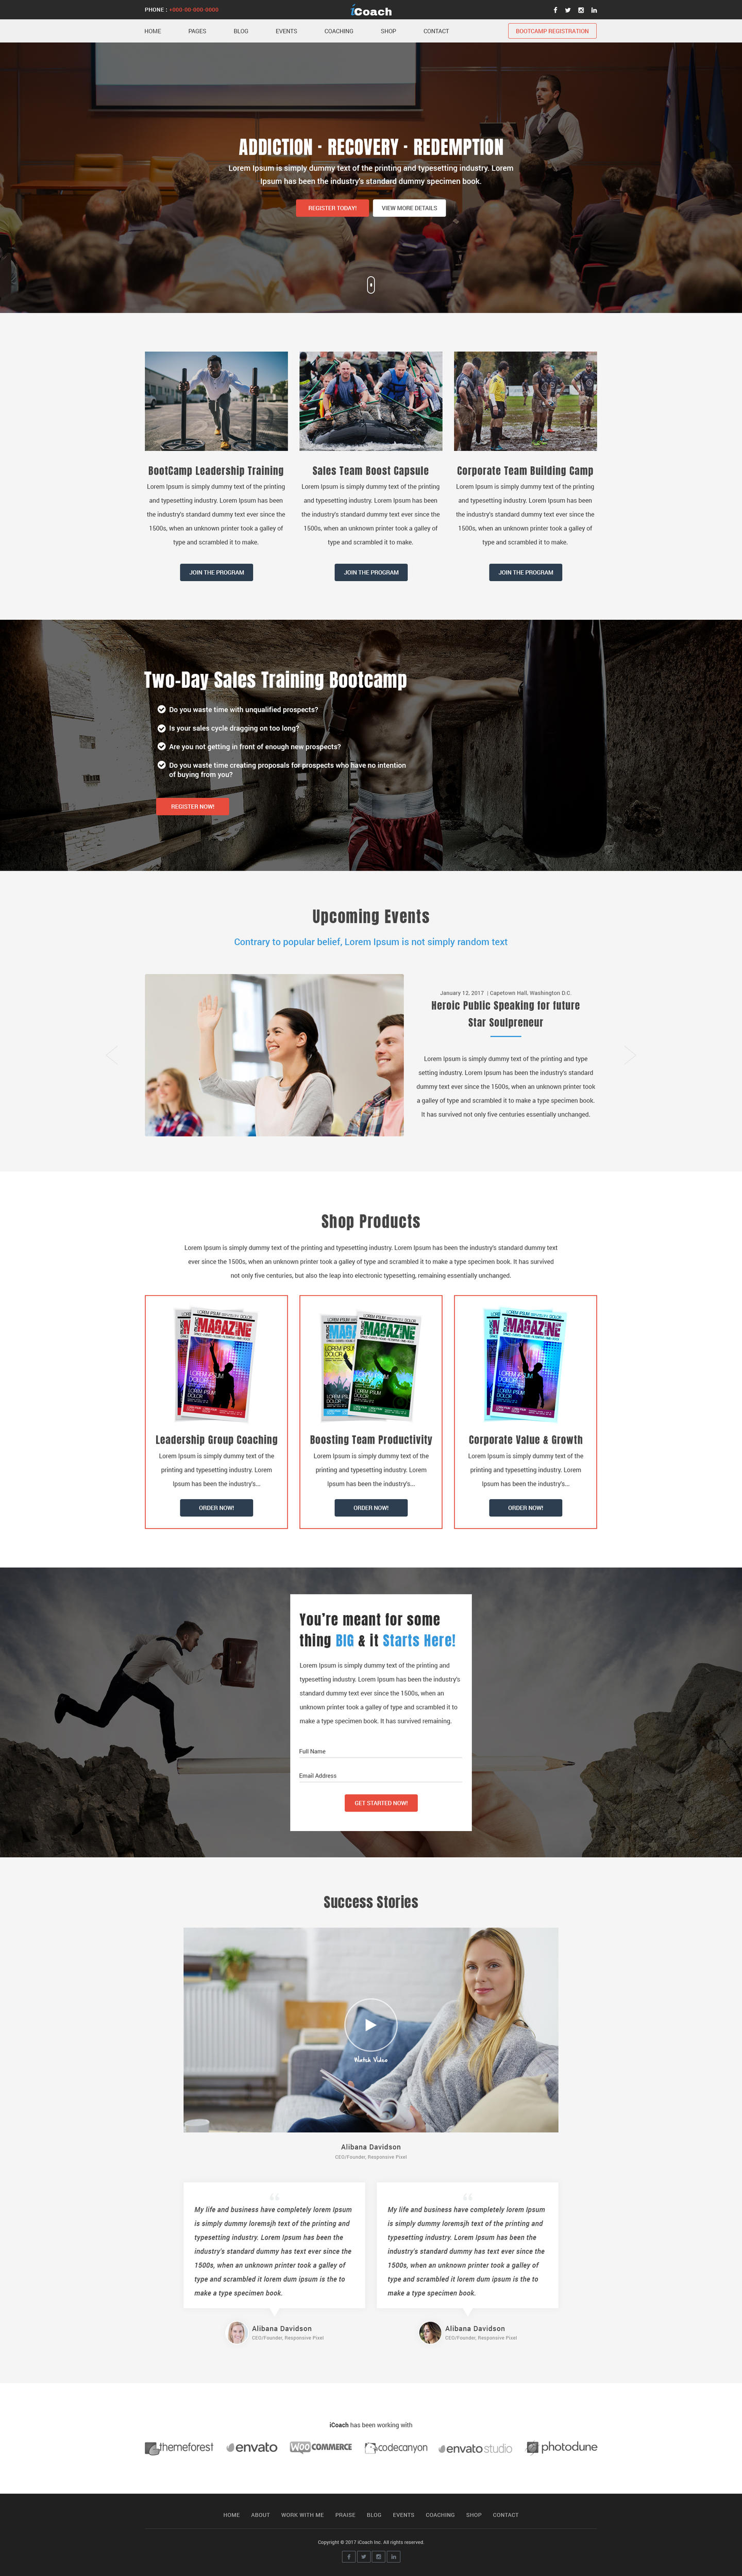 Premium Landing/Single page site design by Bickyg - 105833